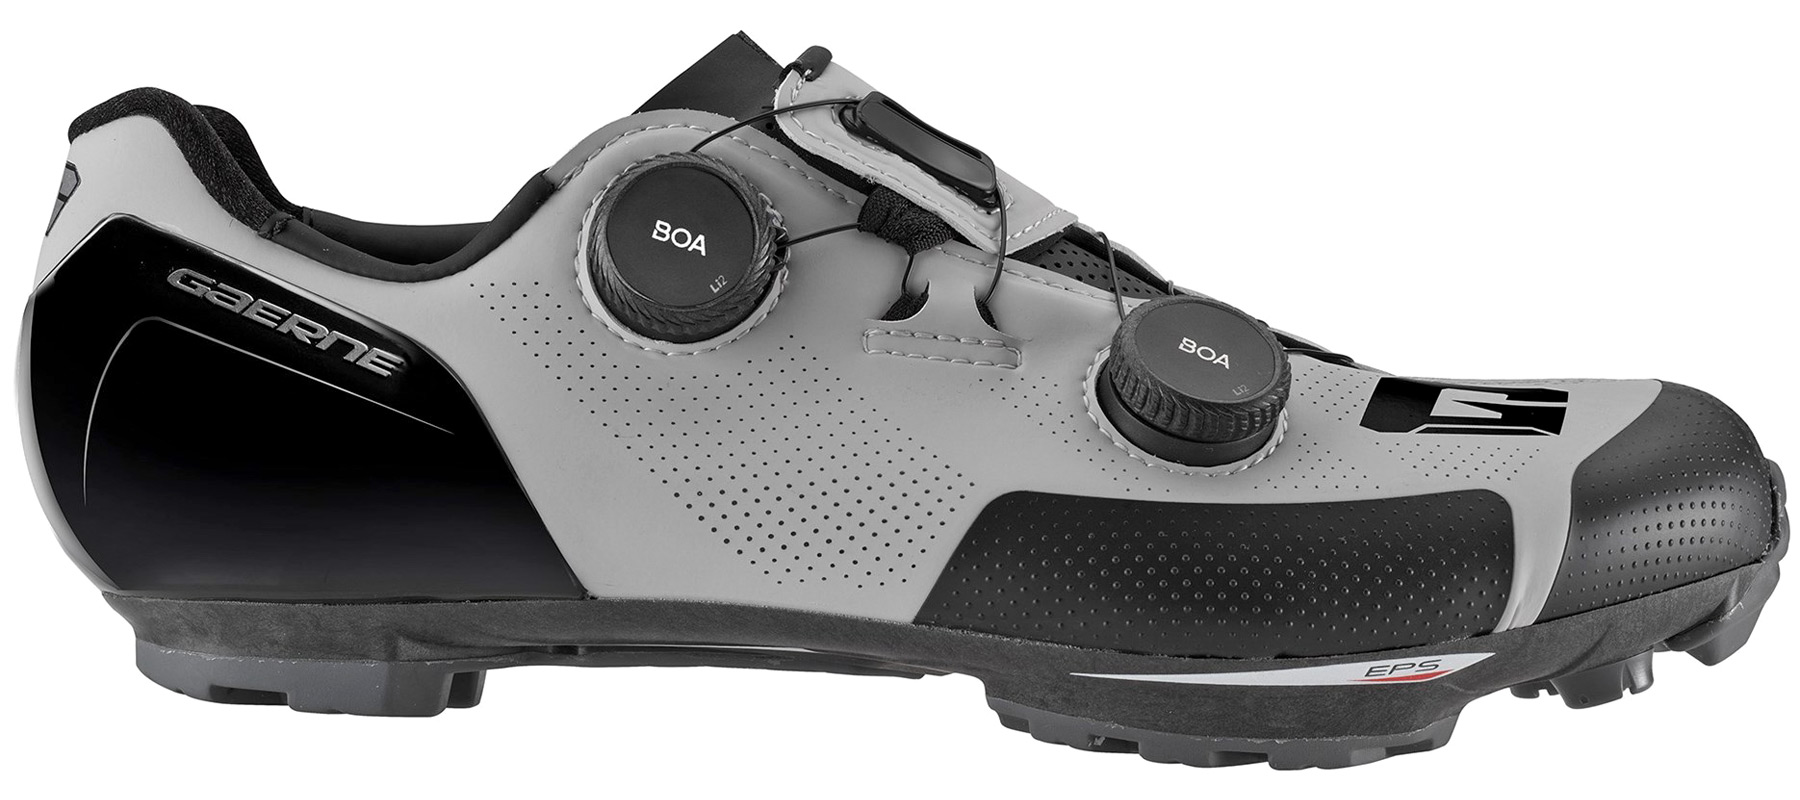 Gaerne G.SNX XC MTB shoes, top-tier race performance carbon cross-country mountain bike shoe, grey side